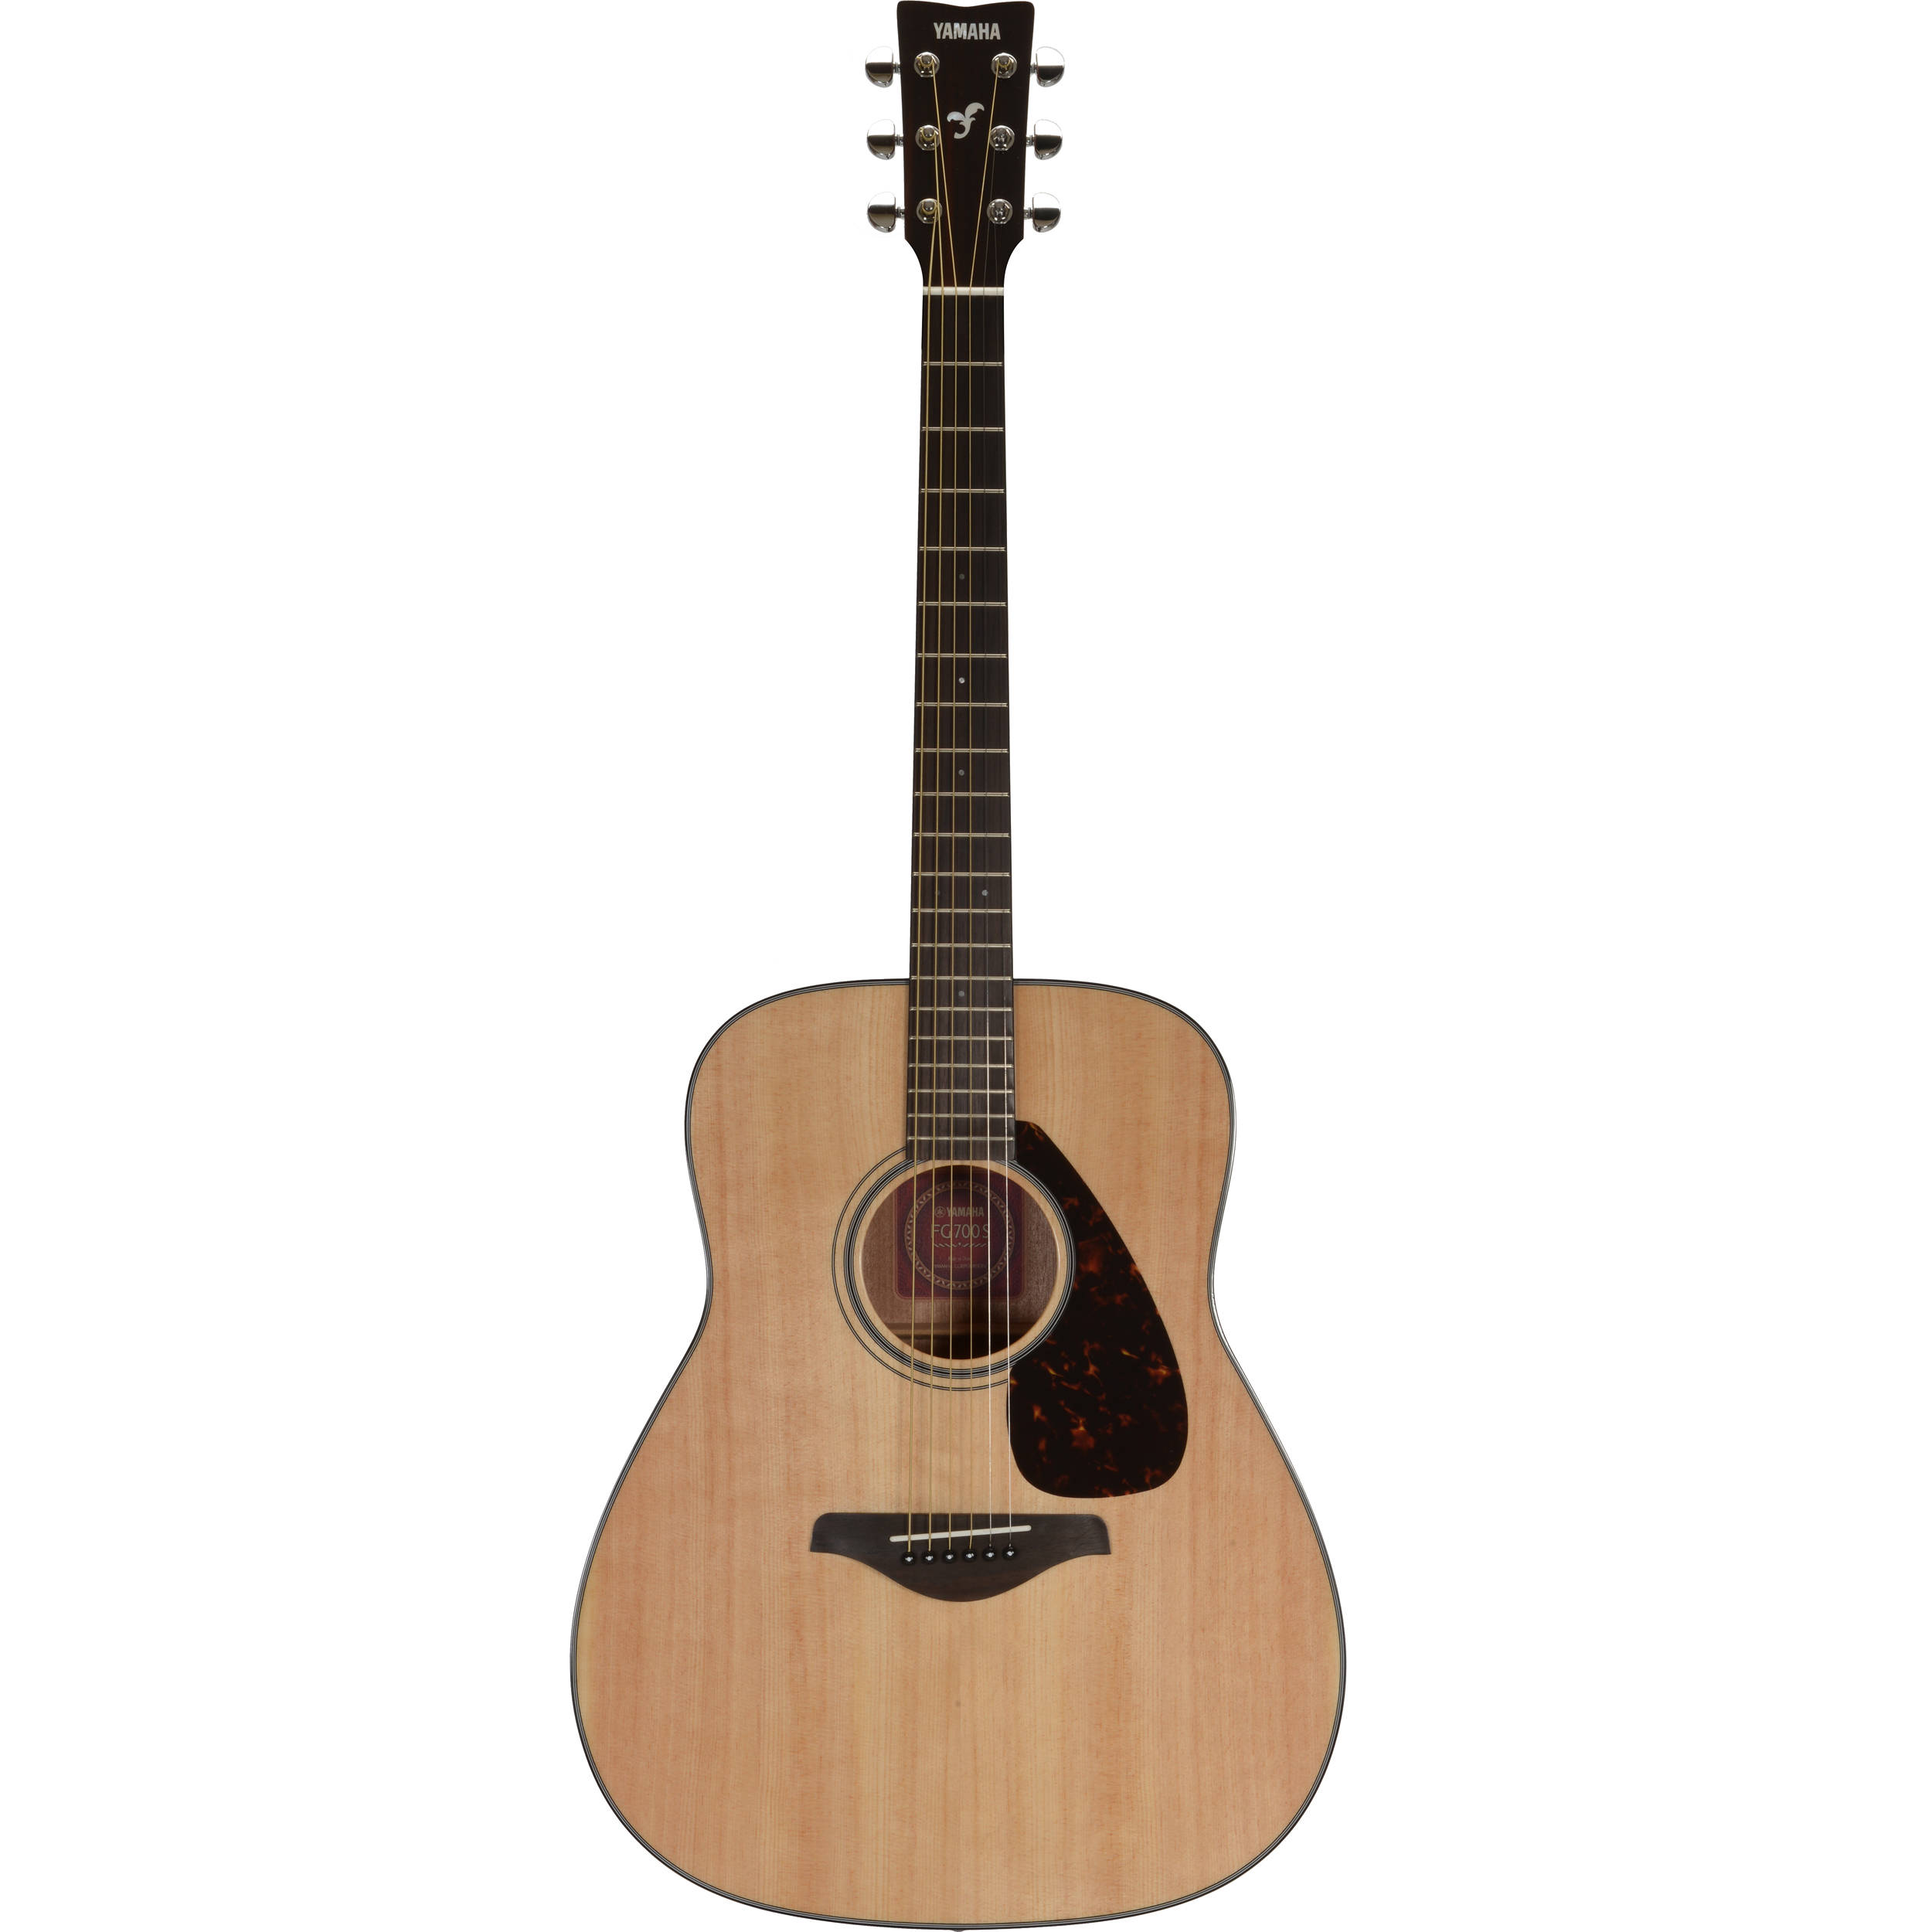 What Size Is The Yamaha Fg Acoustic